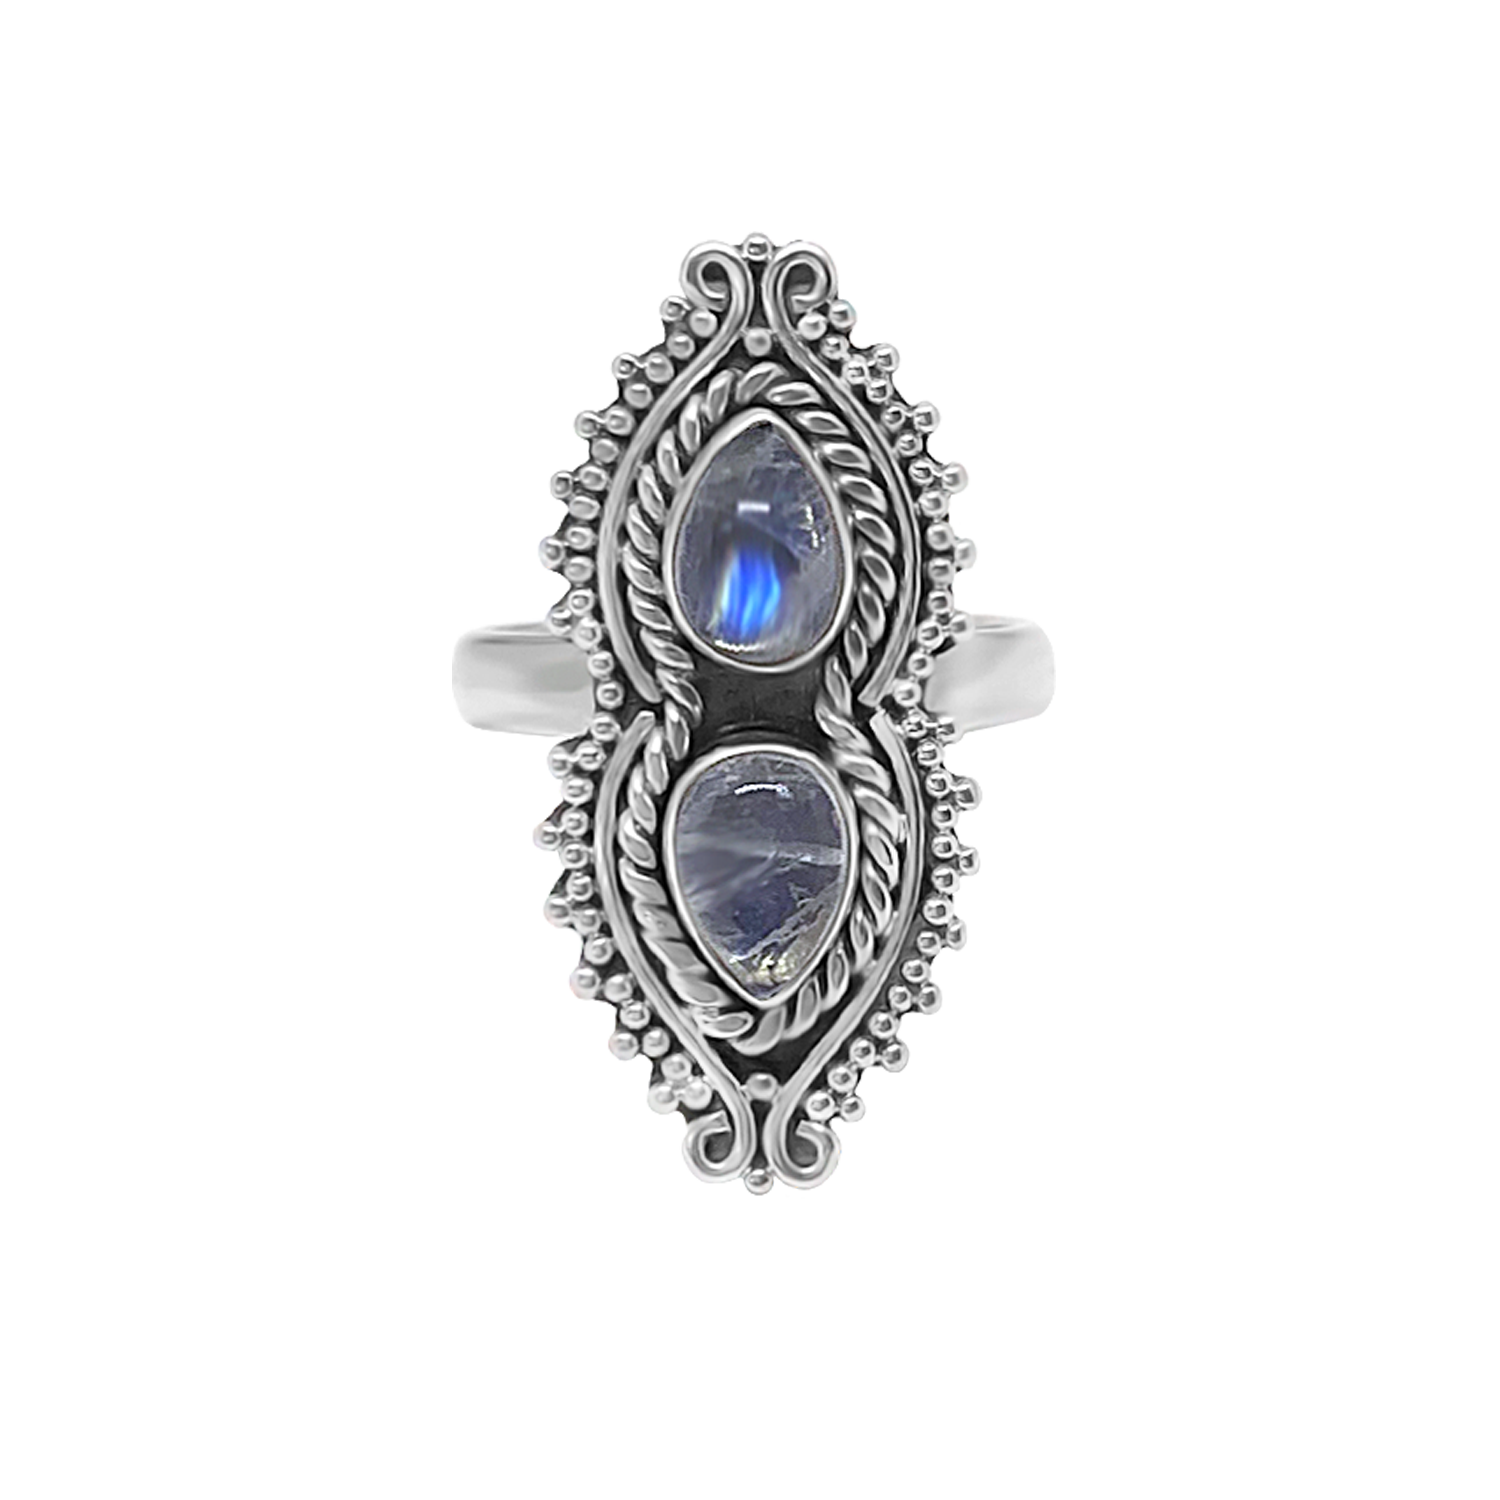 statement sterling silver ring double moonstone handmade jewelry bohemian style kemmi collection